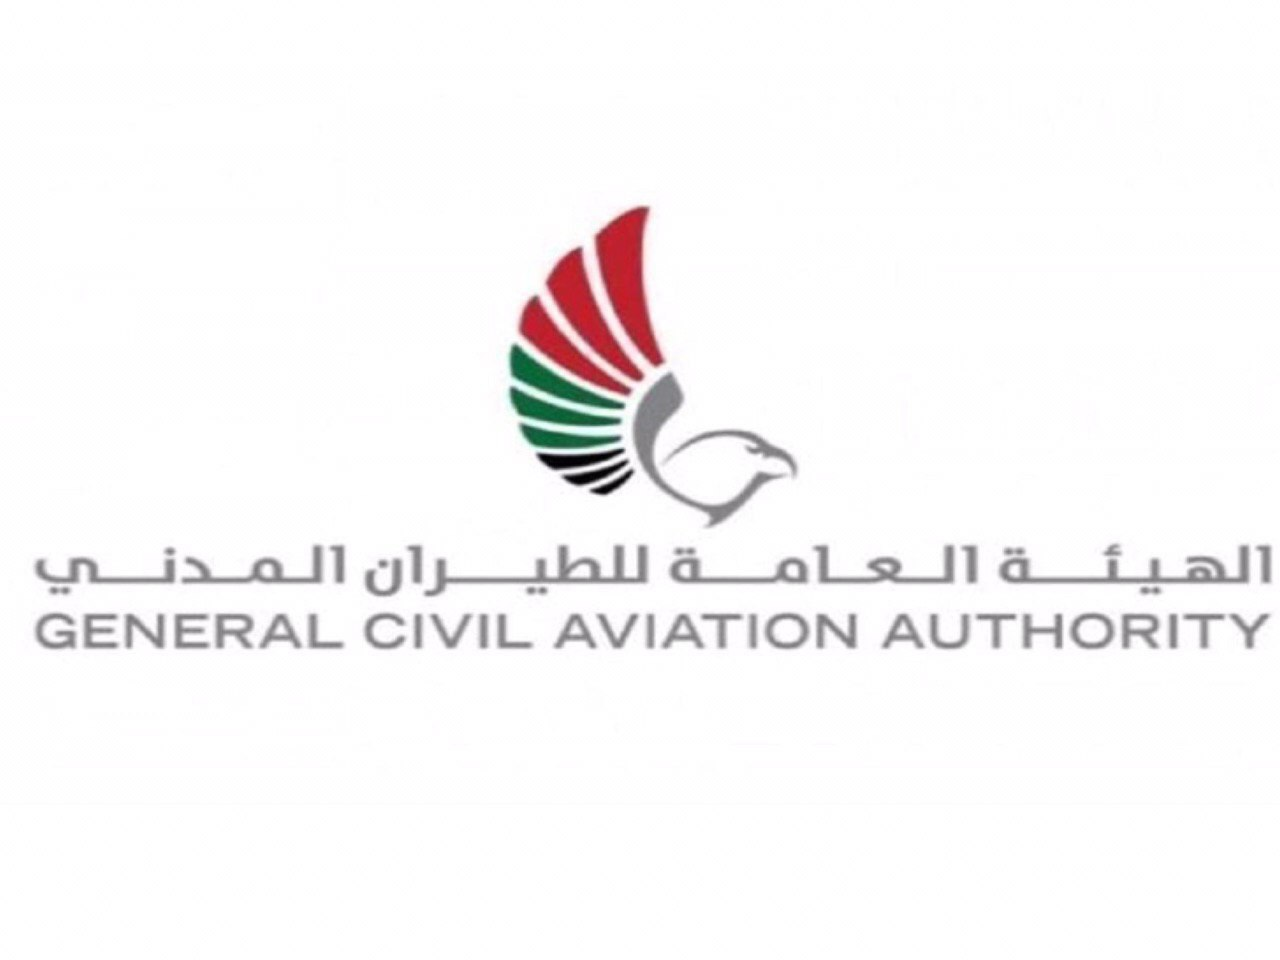 General Civil Aviation Authority announces suspension of all UAE-bound flights from Pakistan as of Monday